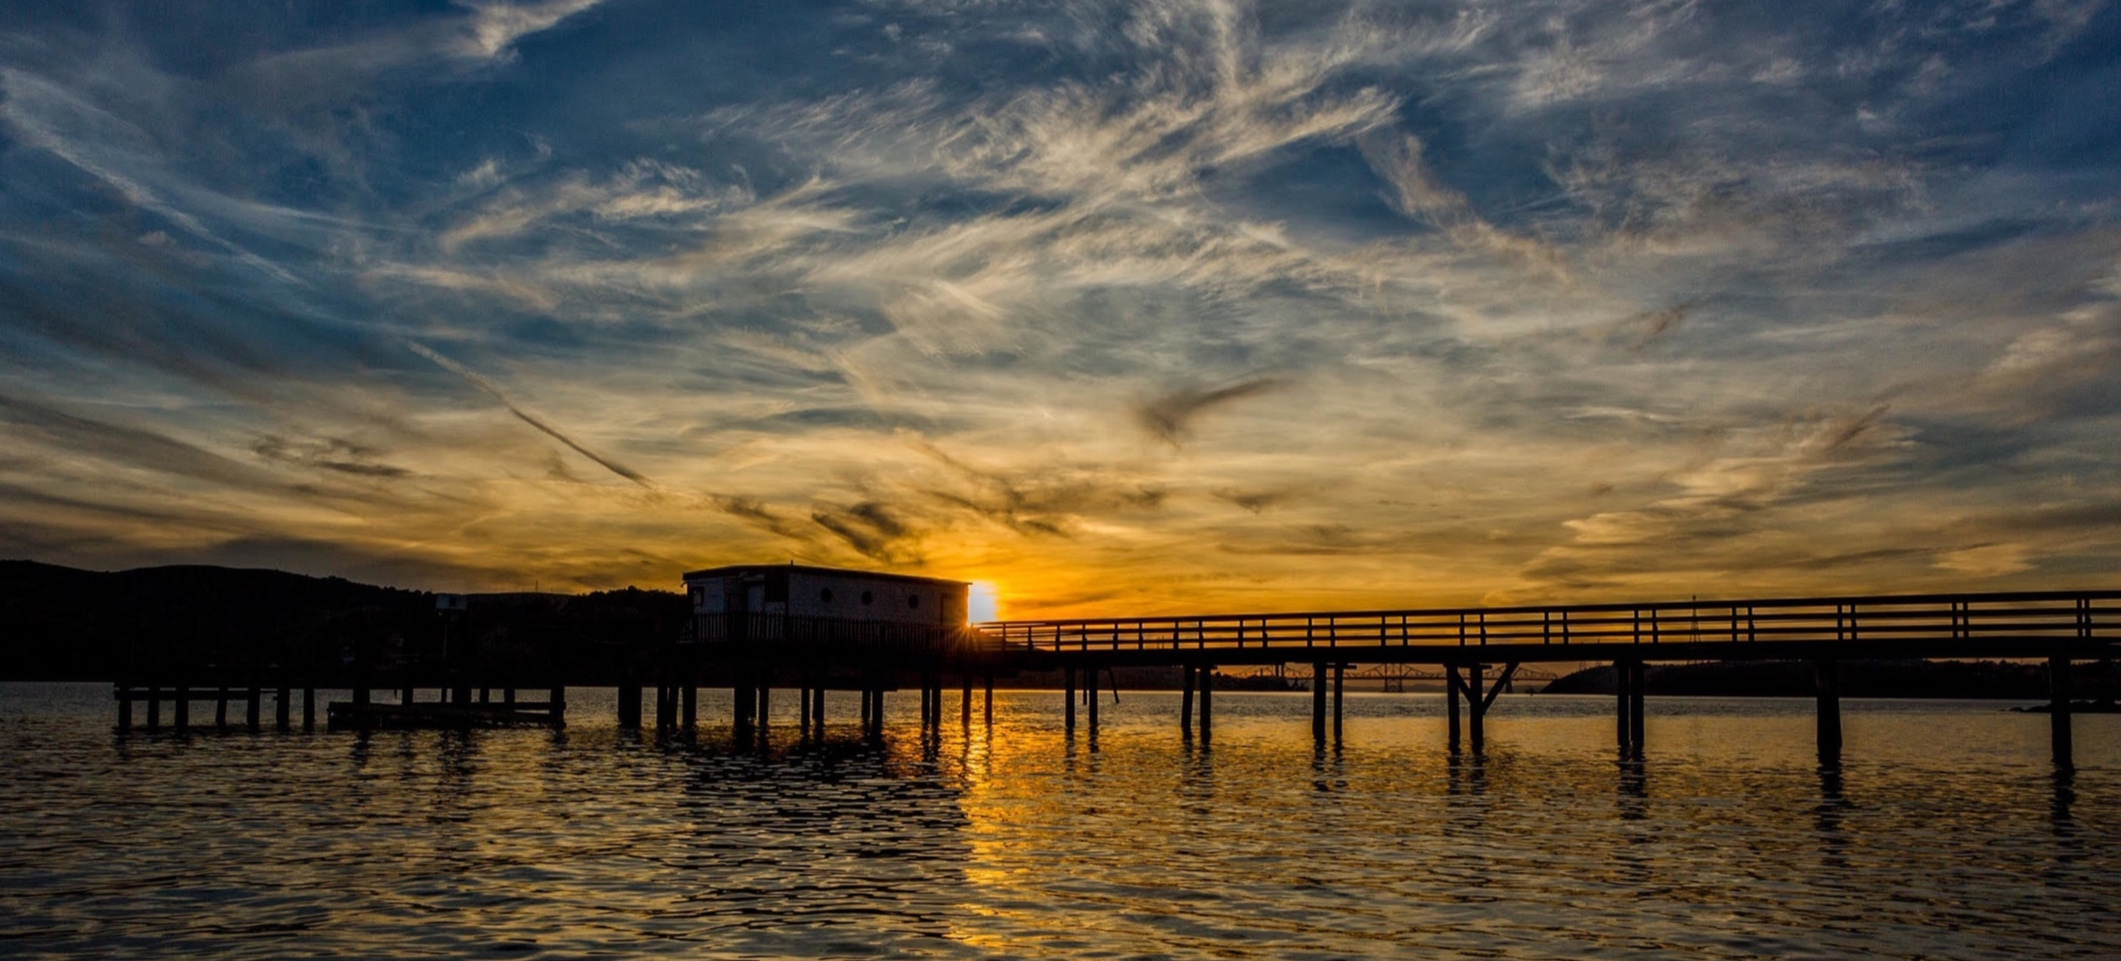 Stunning sunsets are an almost daily experience along the Carquinez Strait. Benicia waterfront, looking towards the Carquinez Bridge. Photo by Benicia resident and photographer,  Kevin Denton .